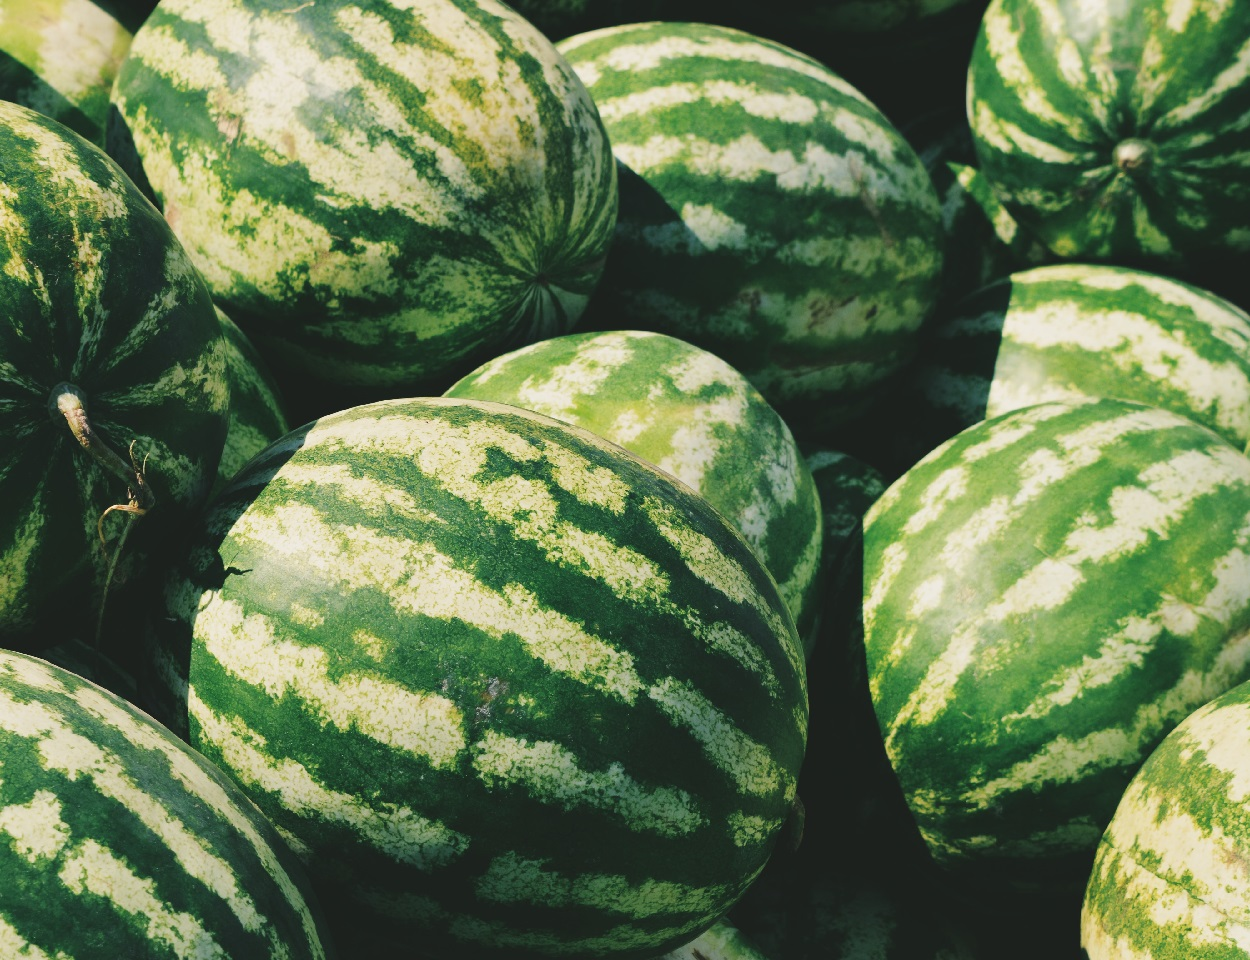 A pile of Oregon watermelons